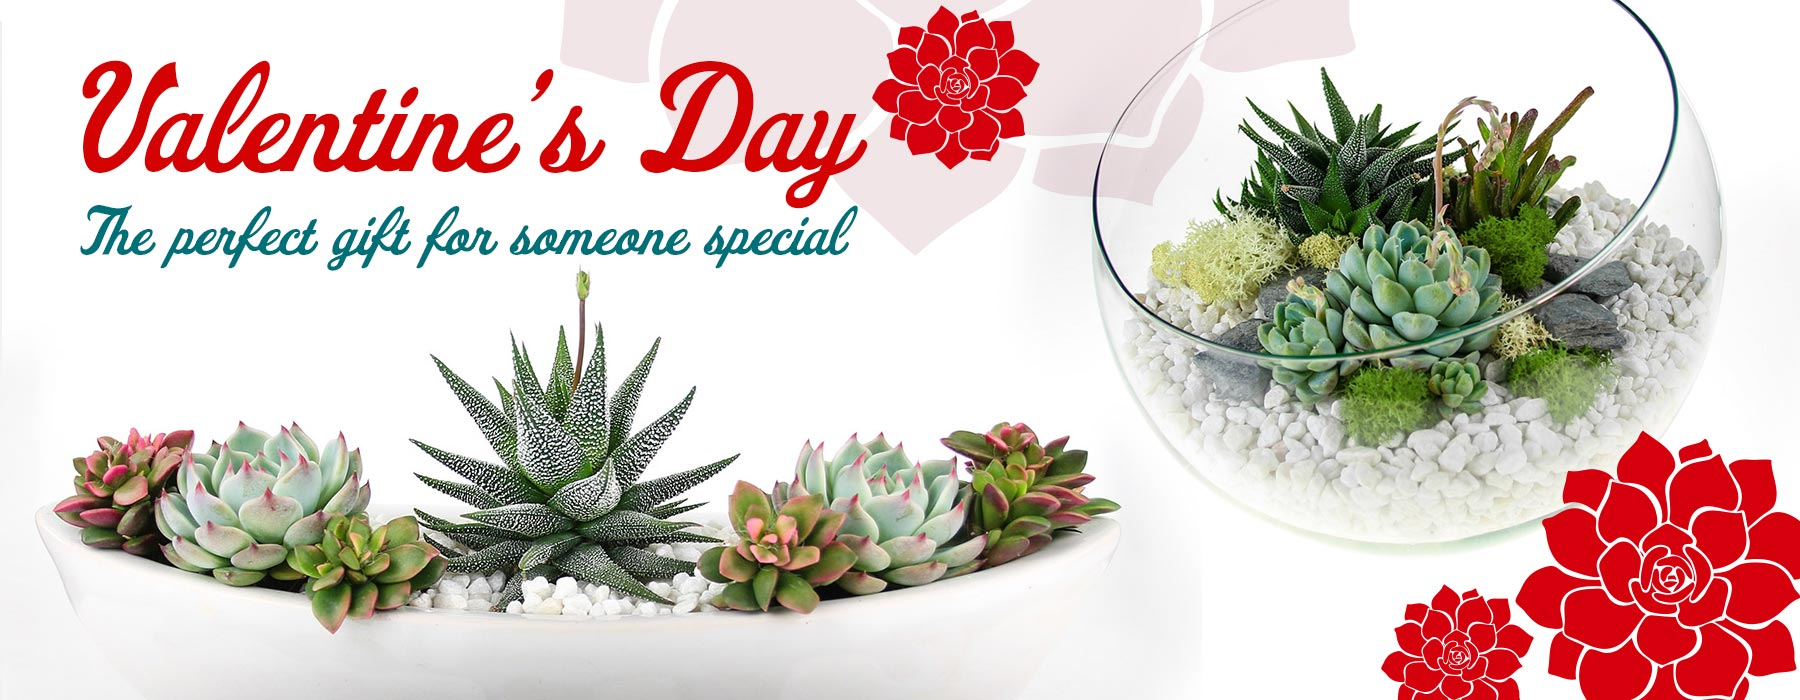 Valentine S Day Terrarium Gifts Featuring Real Succulent Plants Air Plants And Cacti The Art Of Succulents